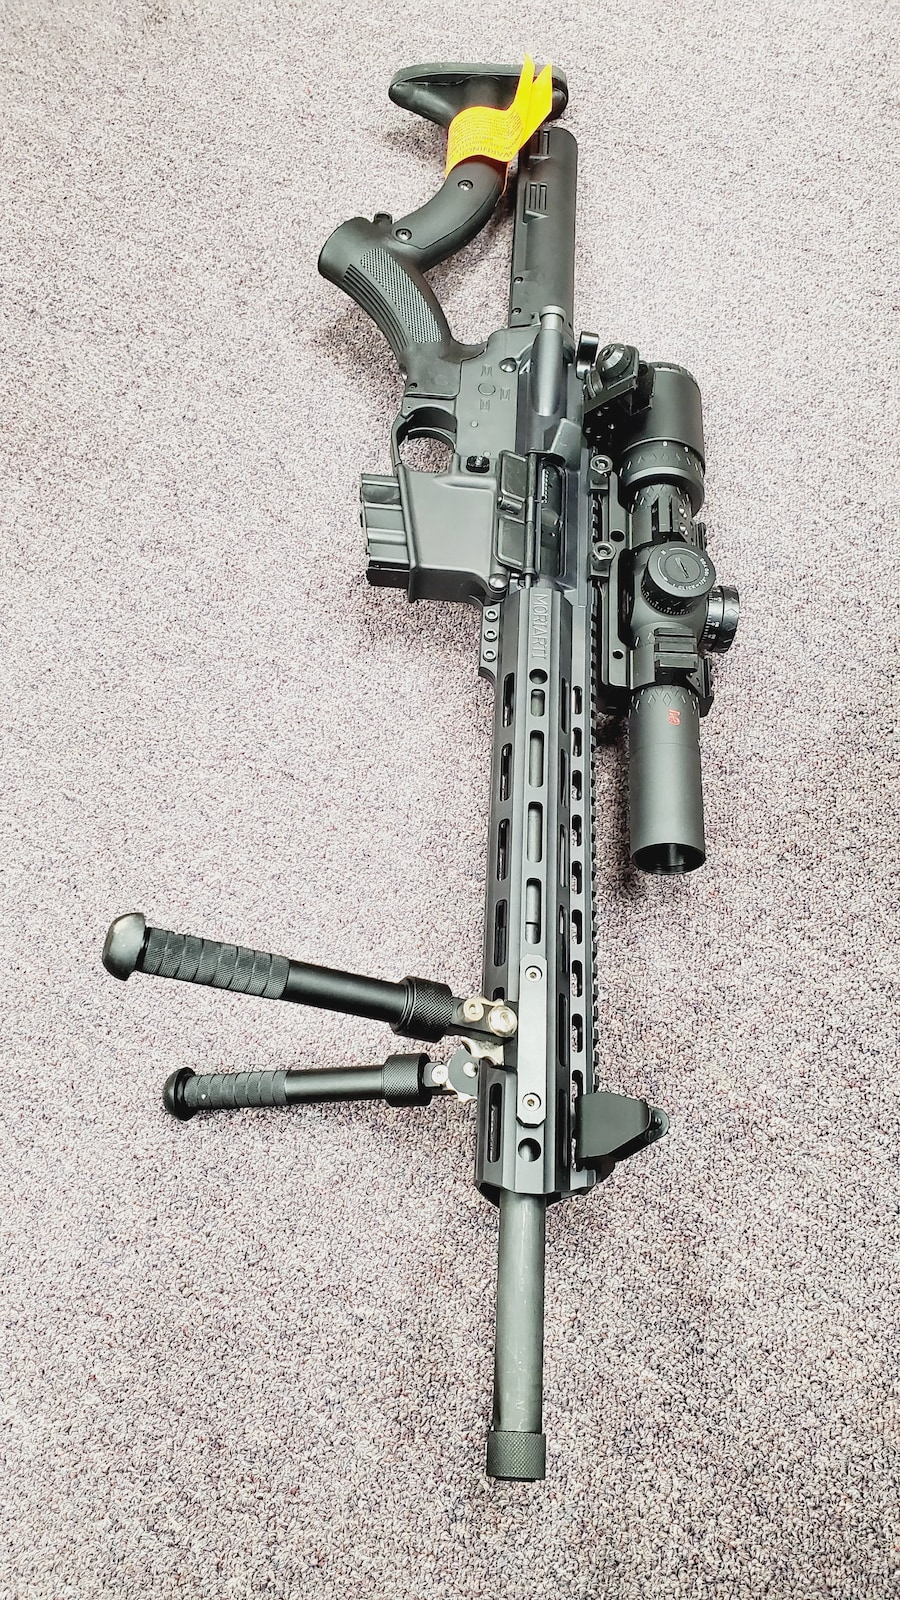 MORIARTI ARMAMENTS Special edition Featureless ar47 AR-15 in AK47's Caliber 7.62x39mm with 10 rd magazine full package